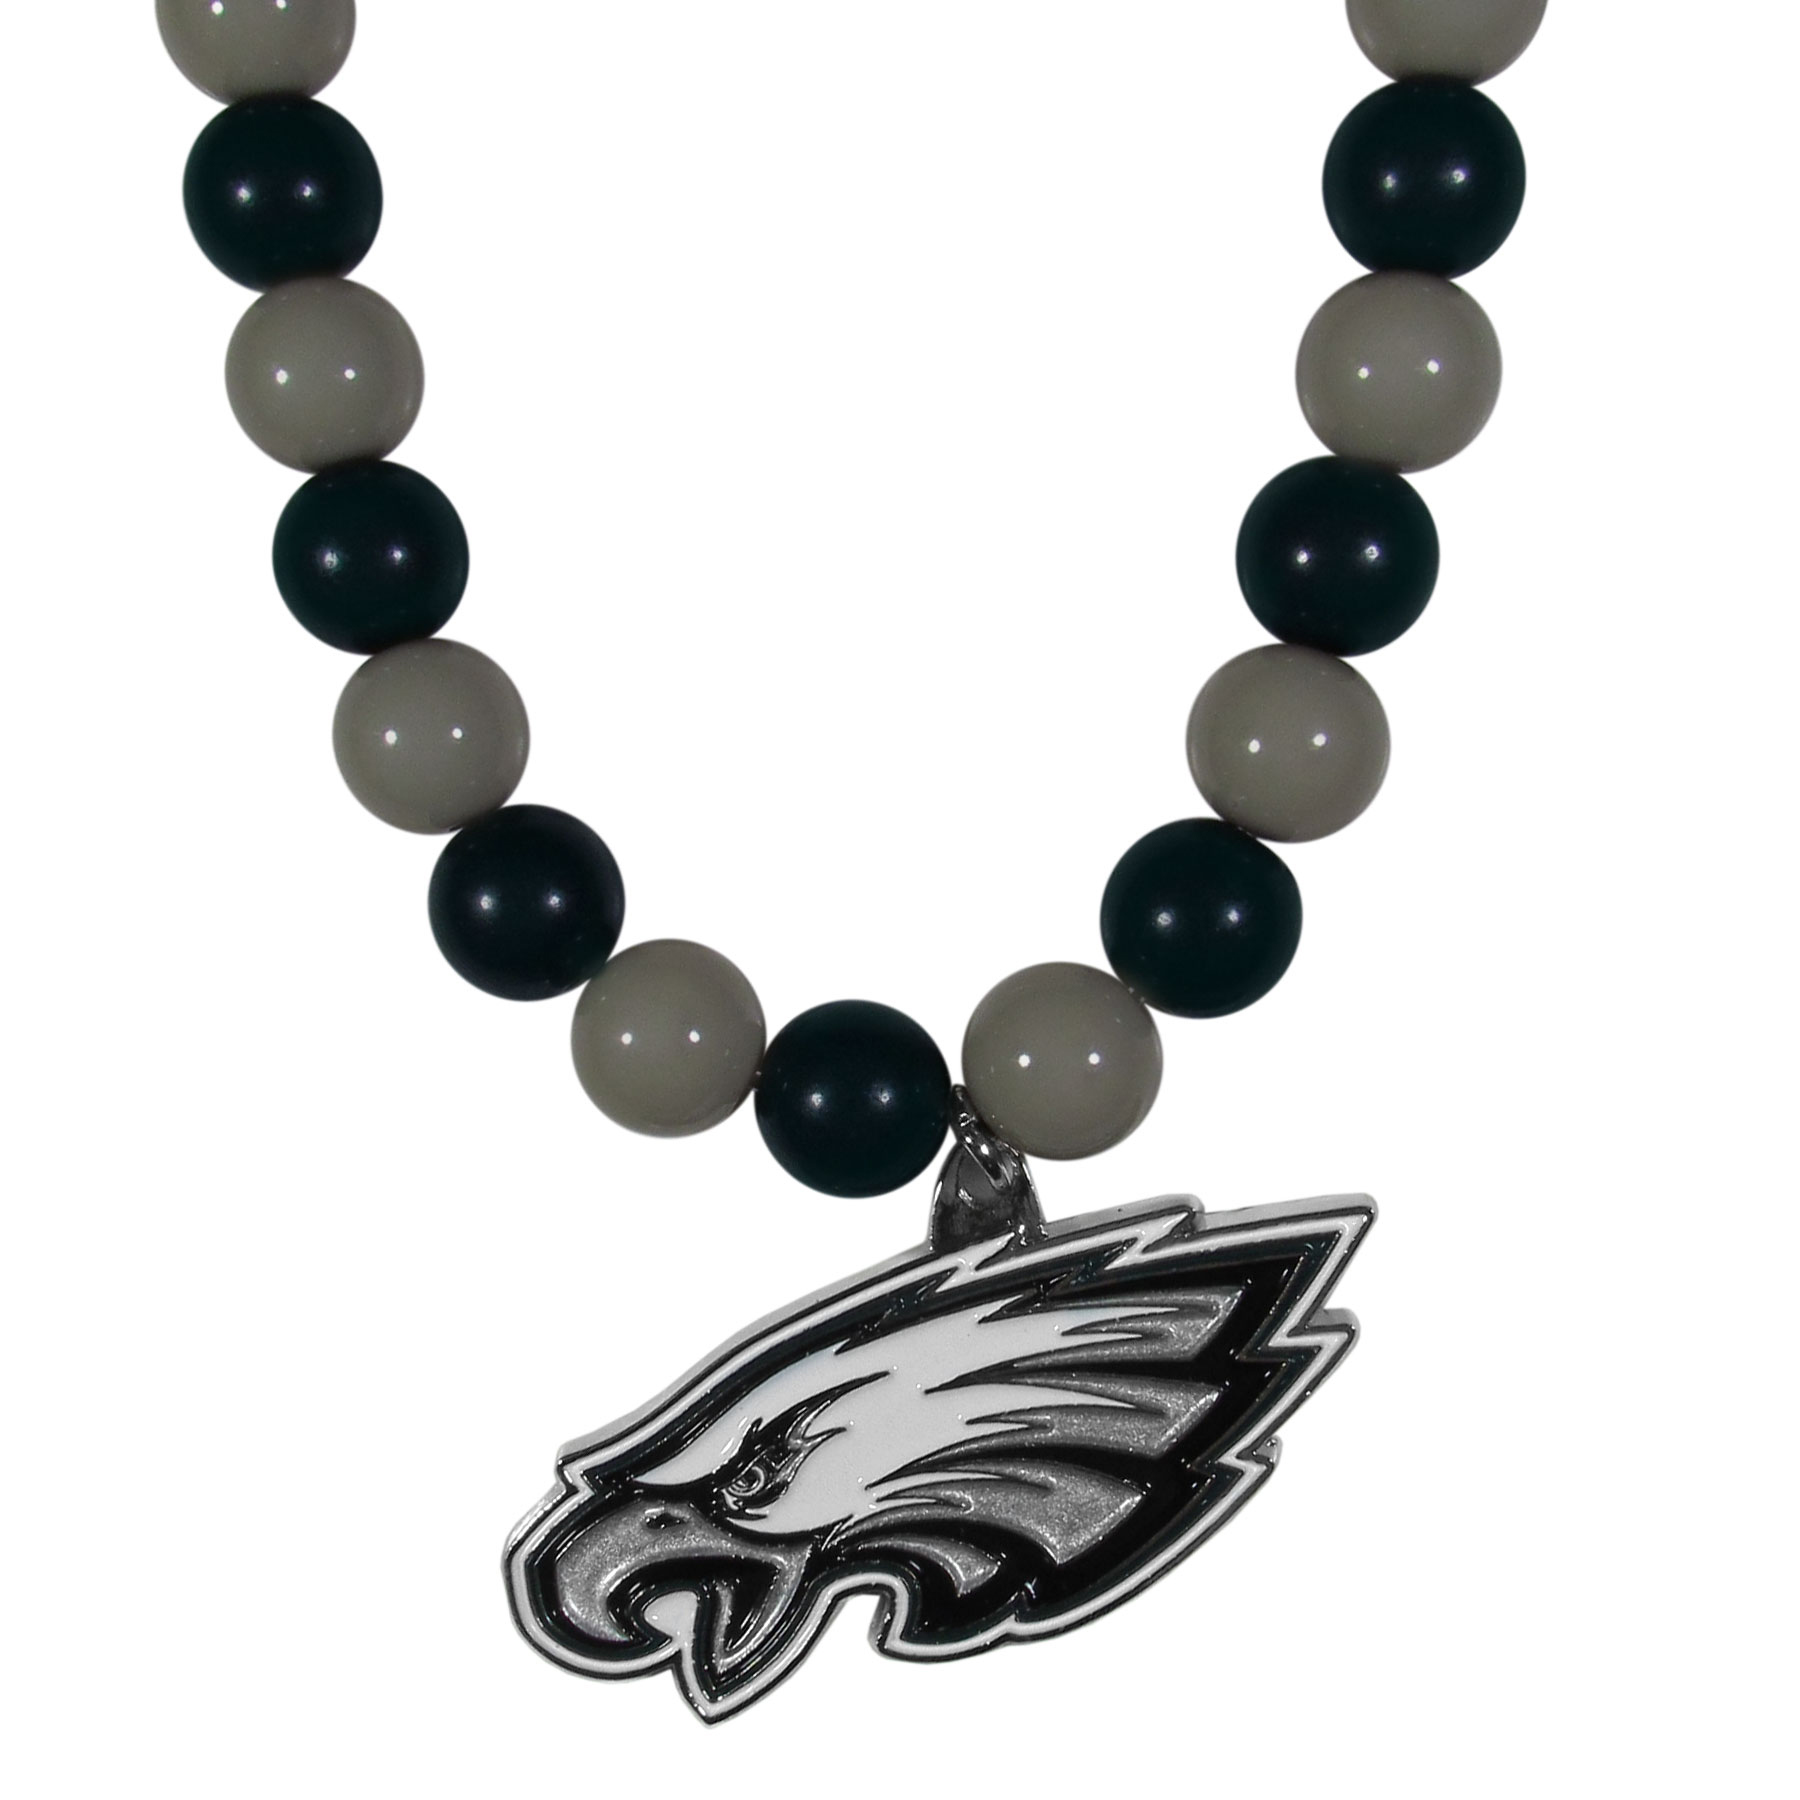 Philadelphia Eagles Fan Bead Necklace - Make a big statement with our fan bead necklaces! These brightly colored necklace have a 24 inch string of alternating colored beads with an extra large, high-polish Philadelphia Eagles pendant.